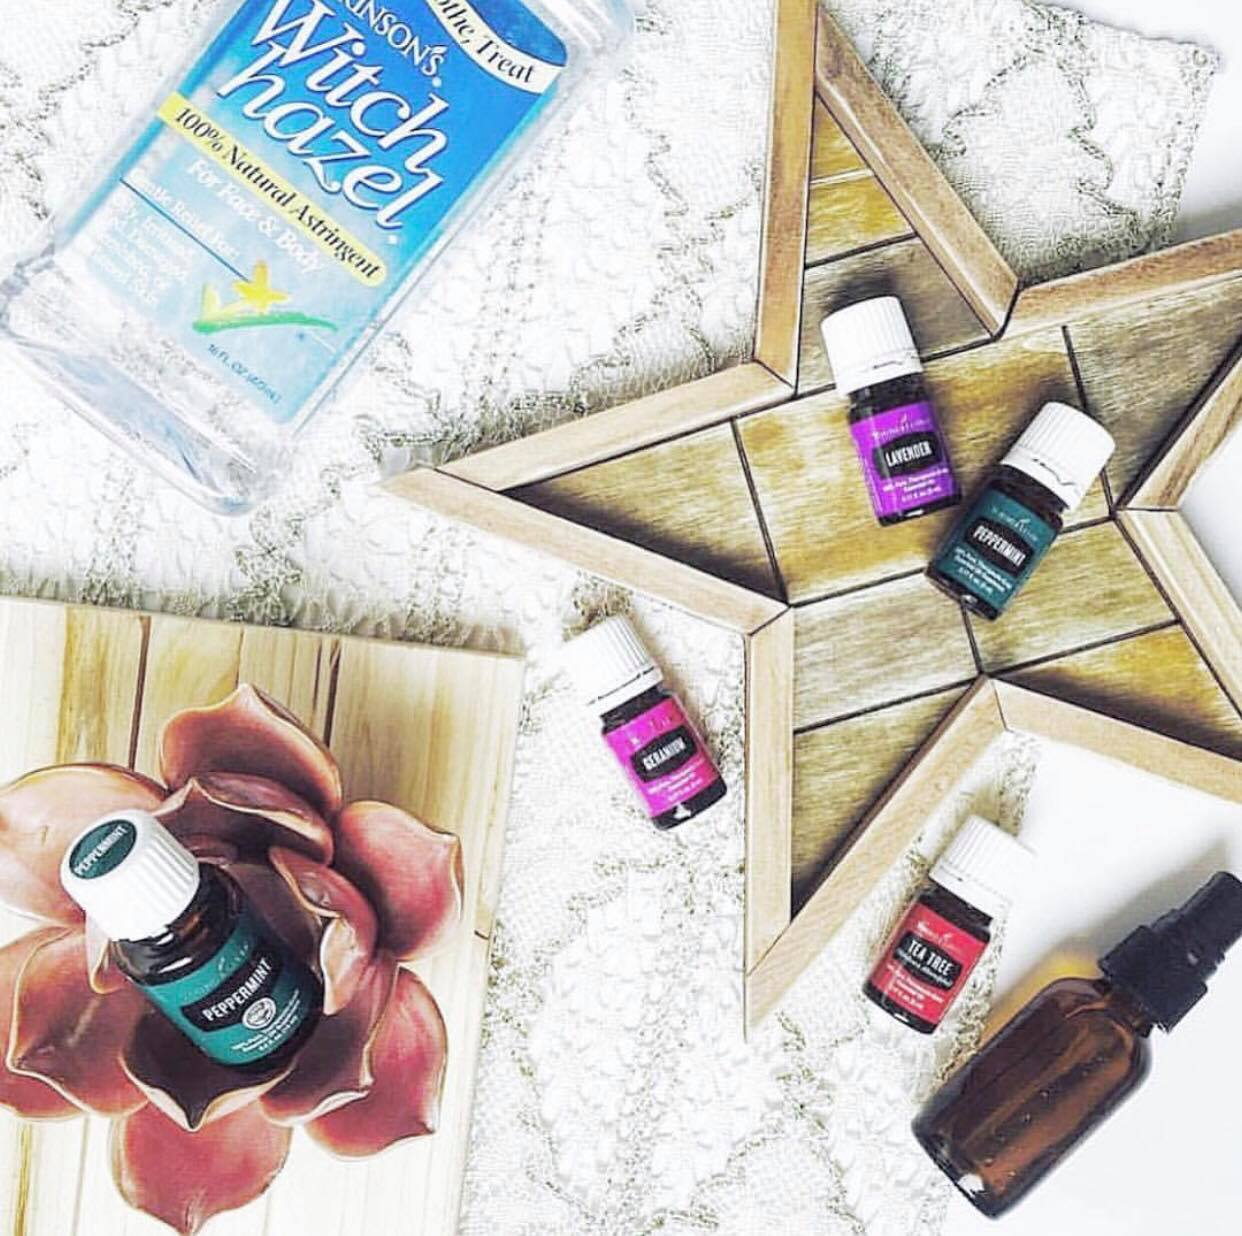 CLEAN & HEALTHY HEAD SPRAY     2 oz glass spray bottle  5 drops Peppermint Oil  5 drops Geranium Oil  5 drops Lavender oil  5 drops Tea Tree oil  dash of Witch Hazel  Fill with Water   Tip: The witch hazel helps the oils to mix in with the water instead of them laying on top.